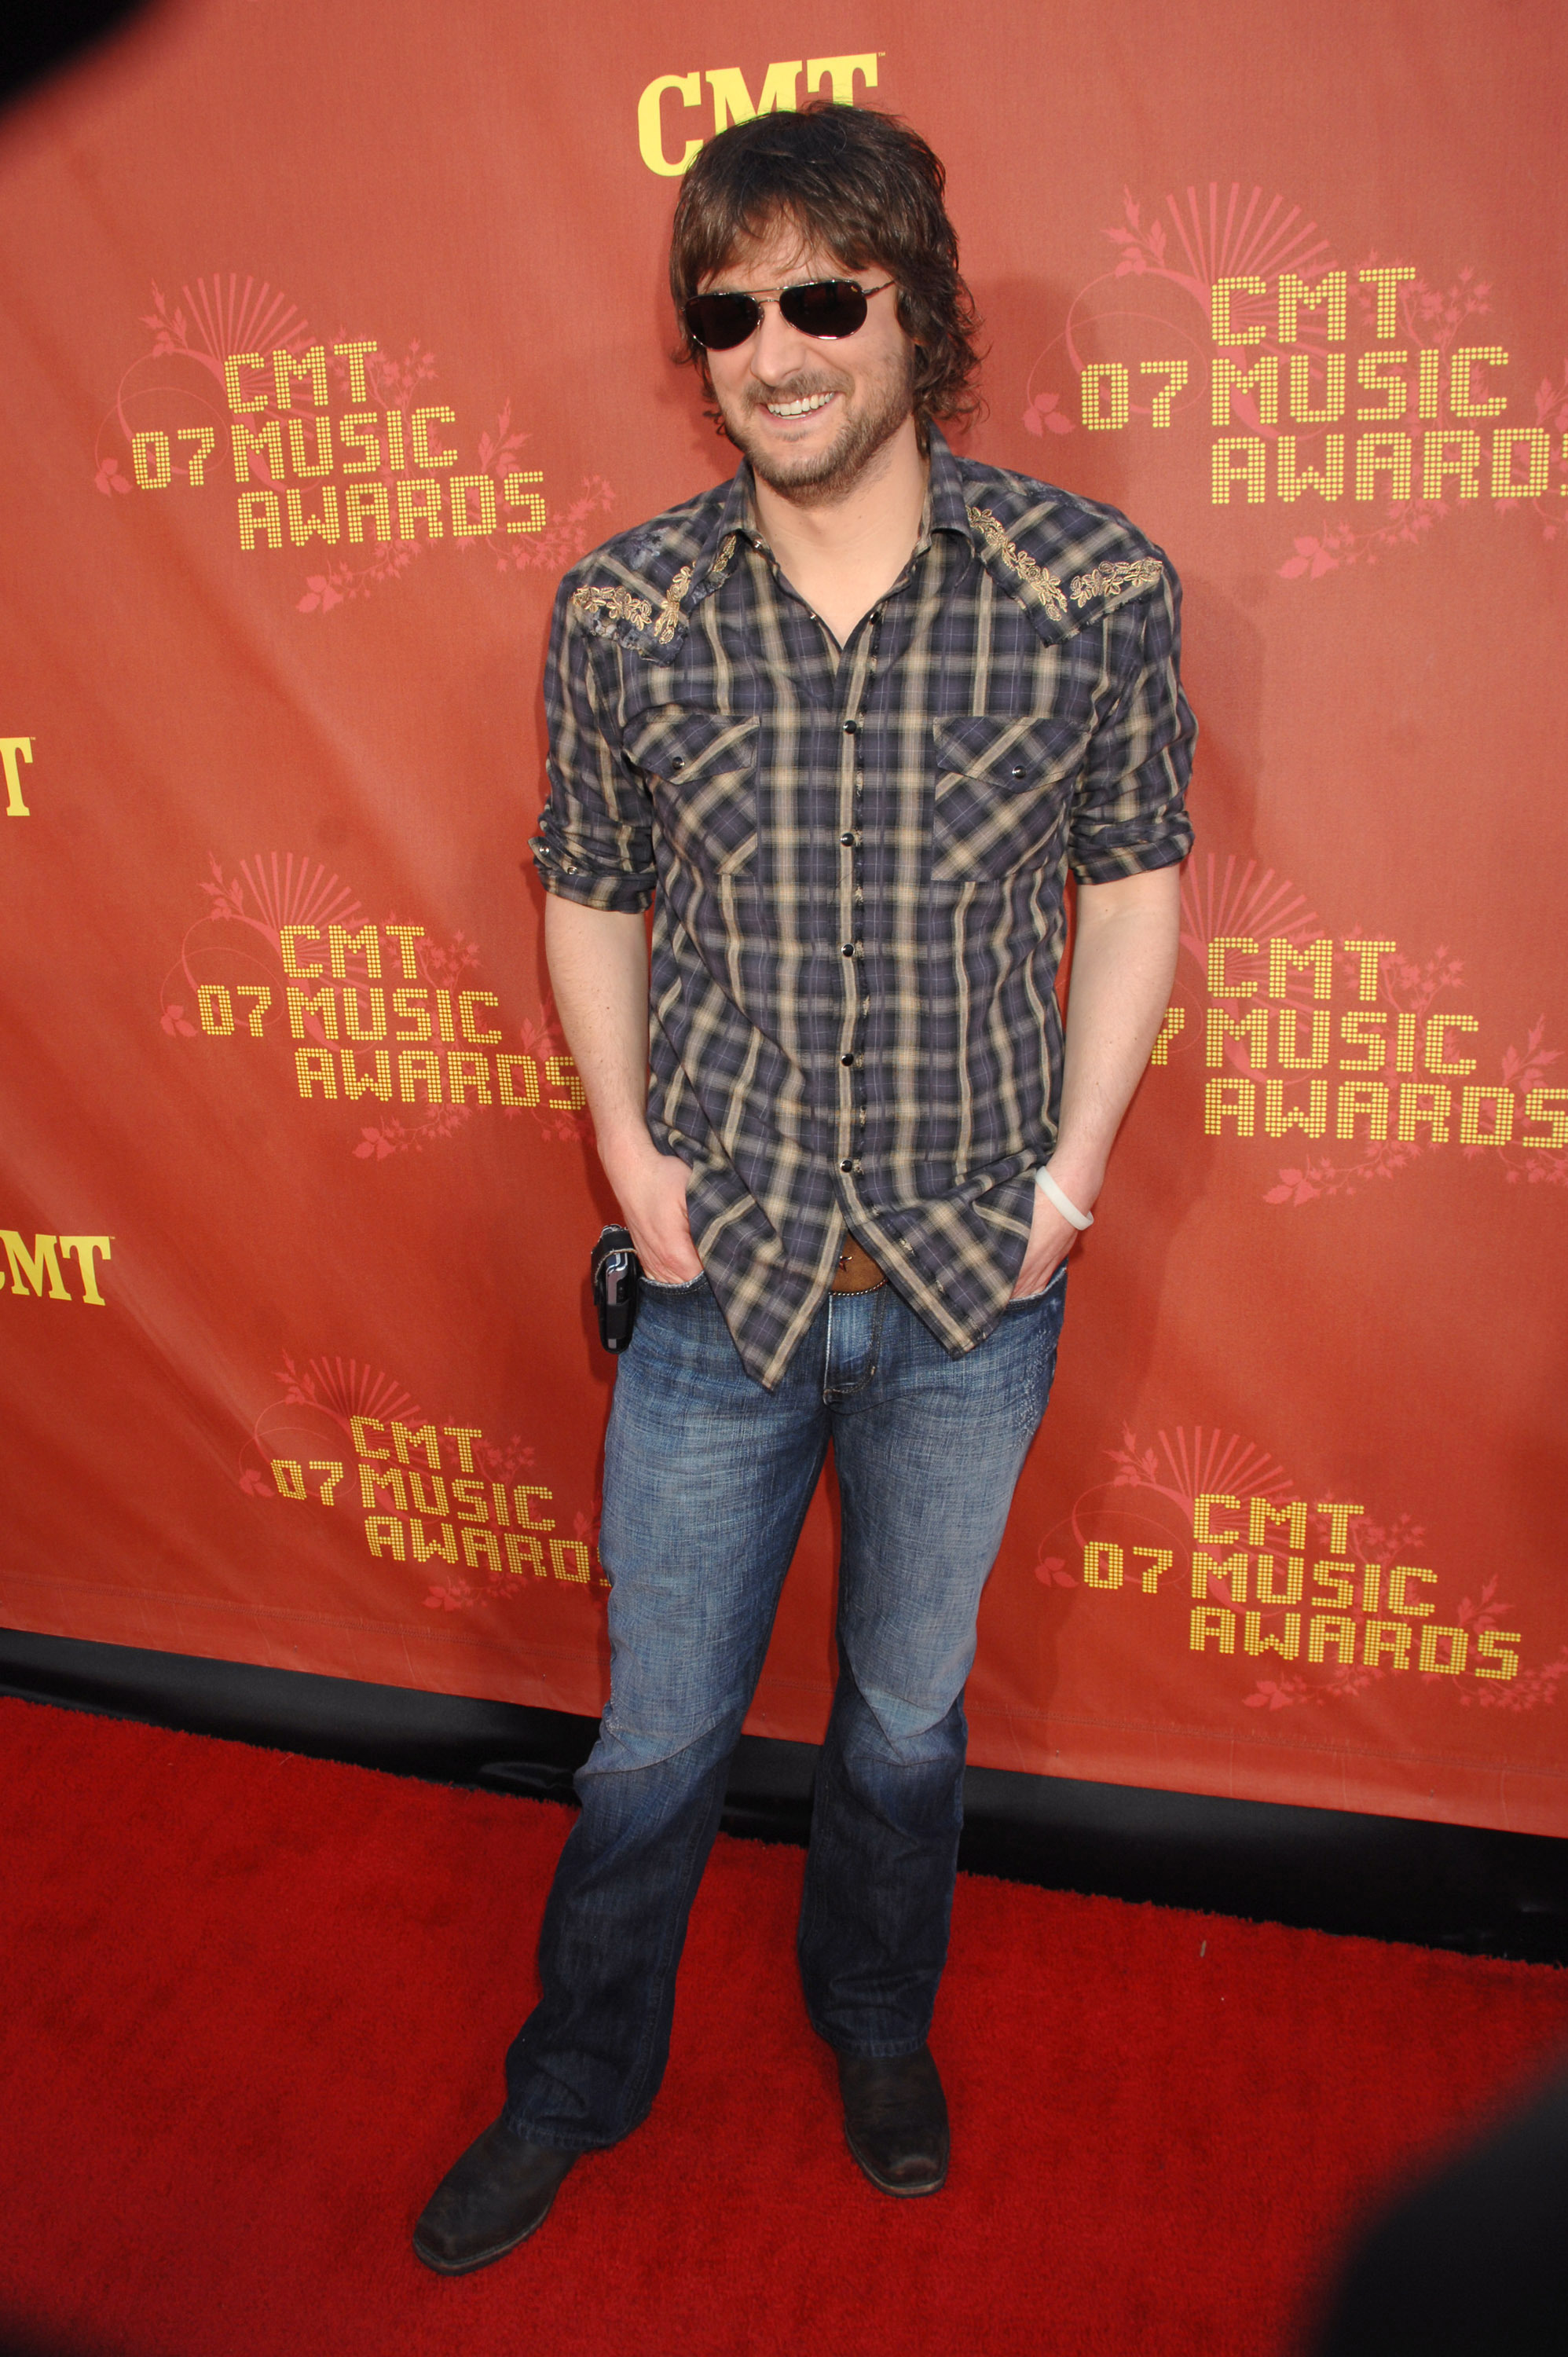 Eric Church attends the 2007 CMT Music Awards at the Curb Event Center at Belmont University in Nashville on April 16.